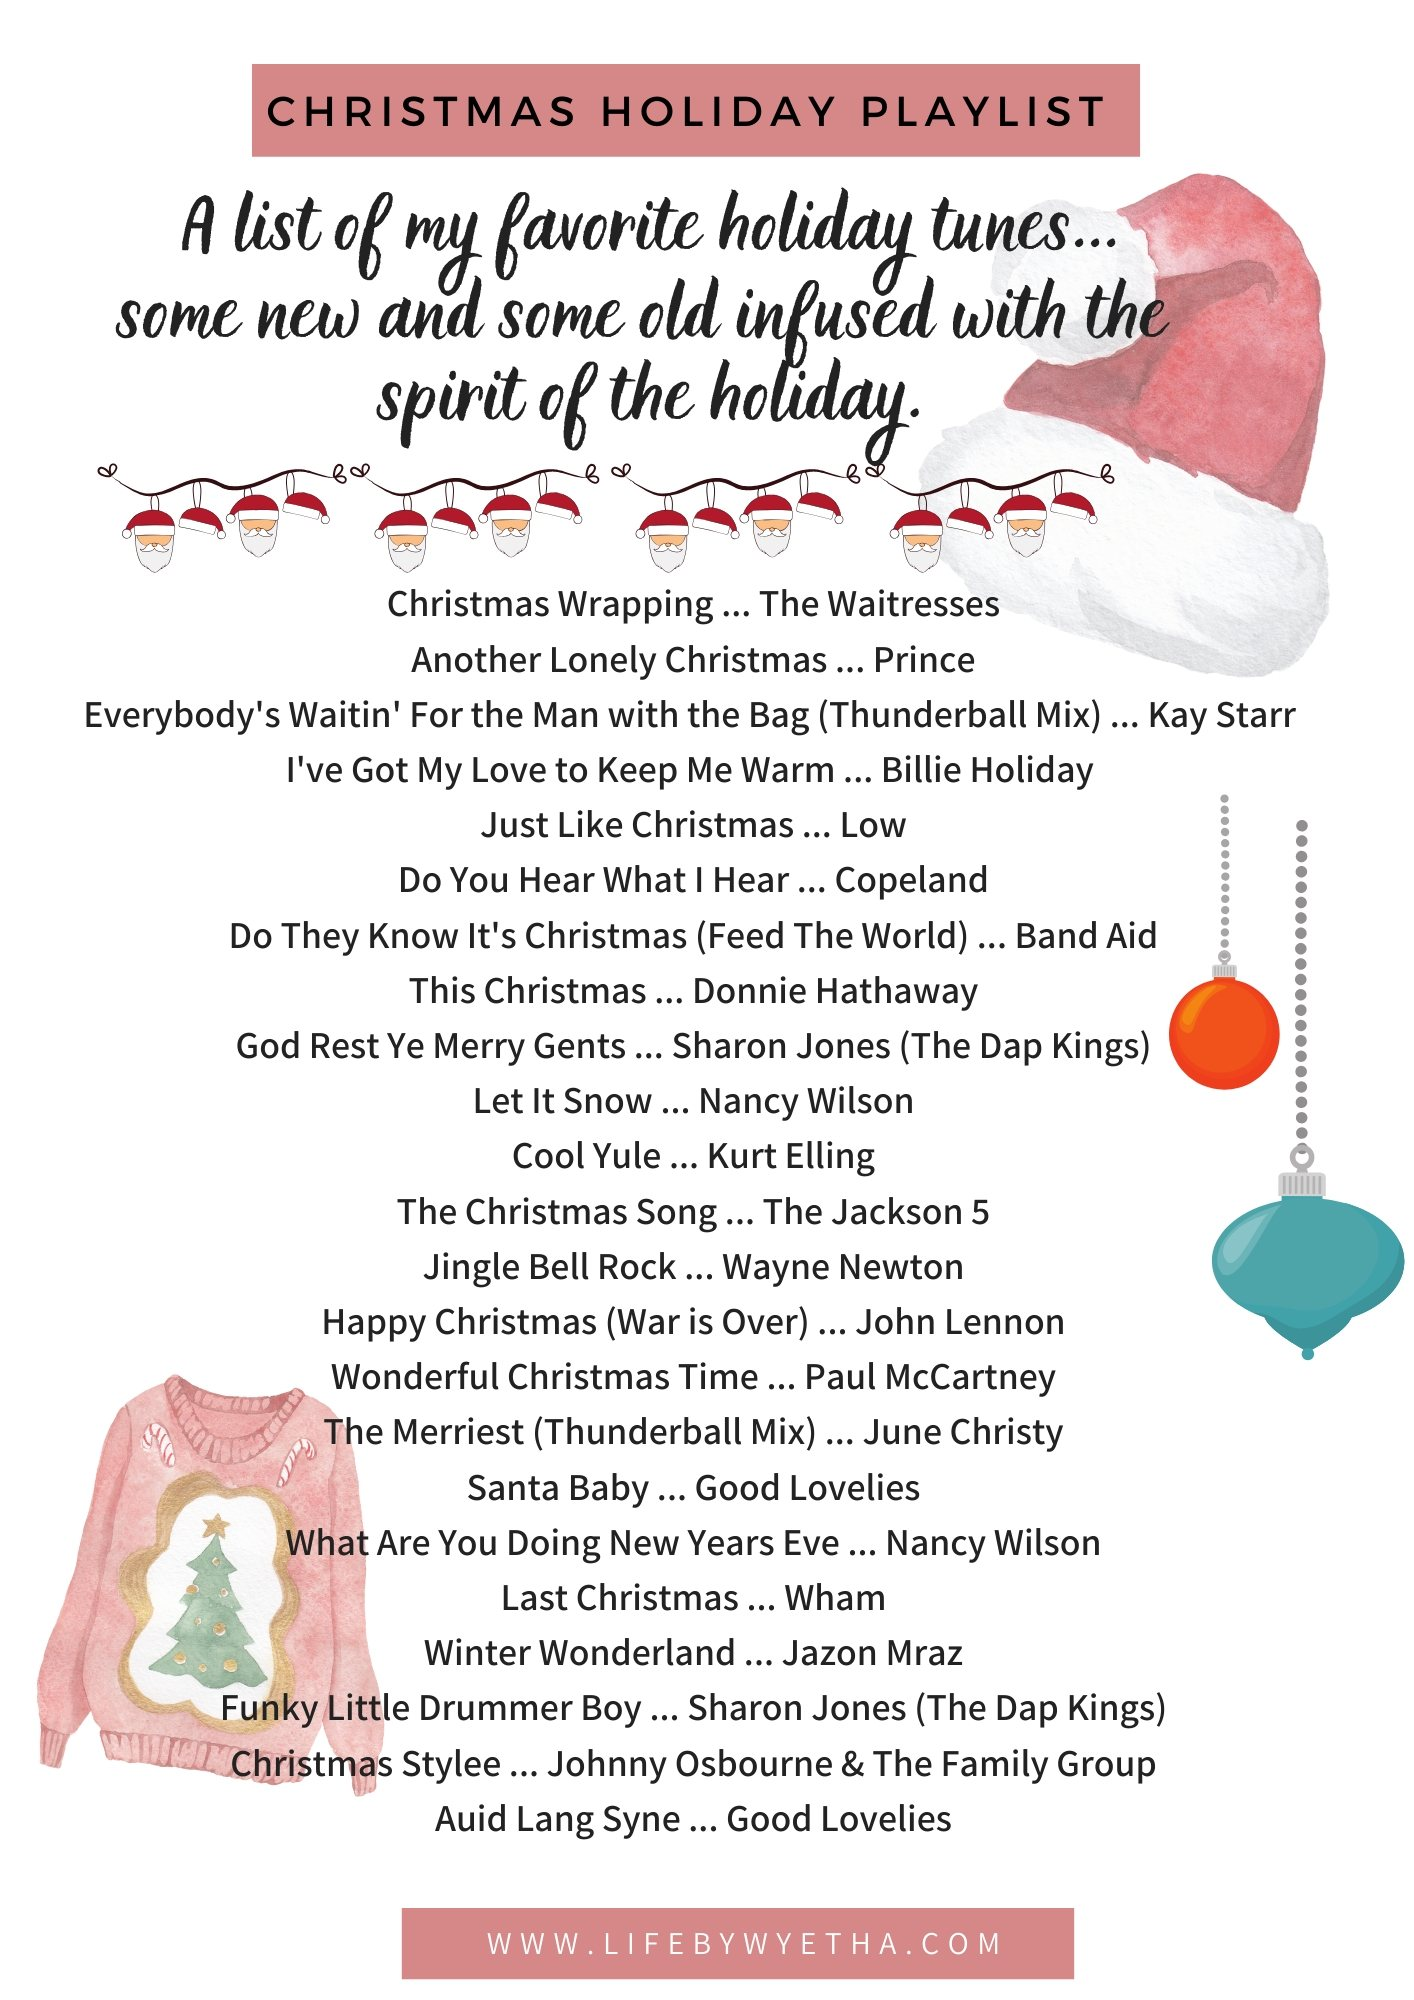 Christmas Playlist 2019